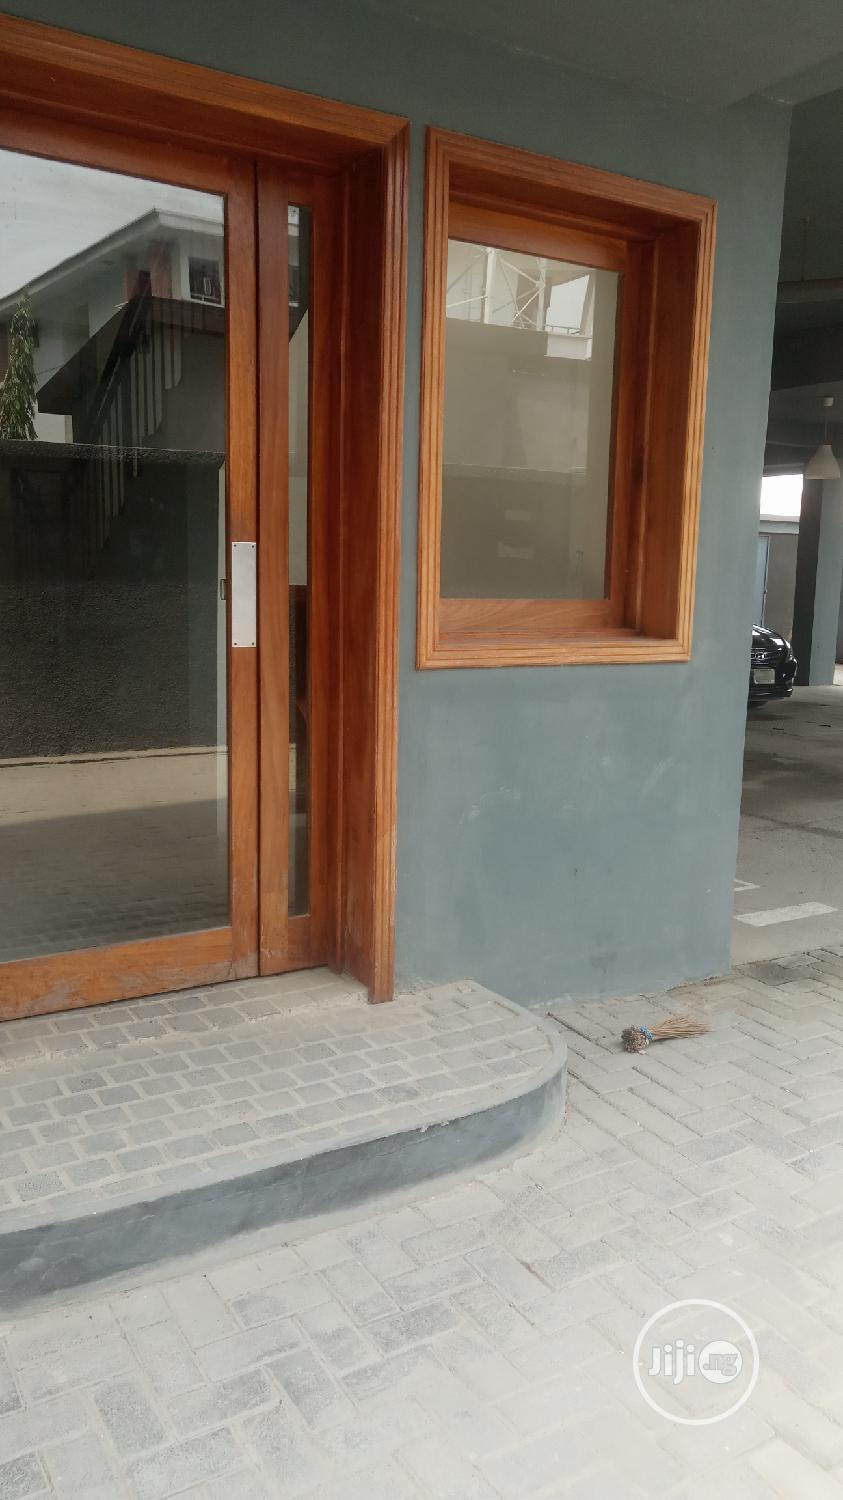 Spaciously Built 2 Bedroom Apartment For Rent In The Heart Of Oniru | Houses & Apartments For Rent for sale in Victoria Island, Lagos State, Nigeria